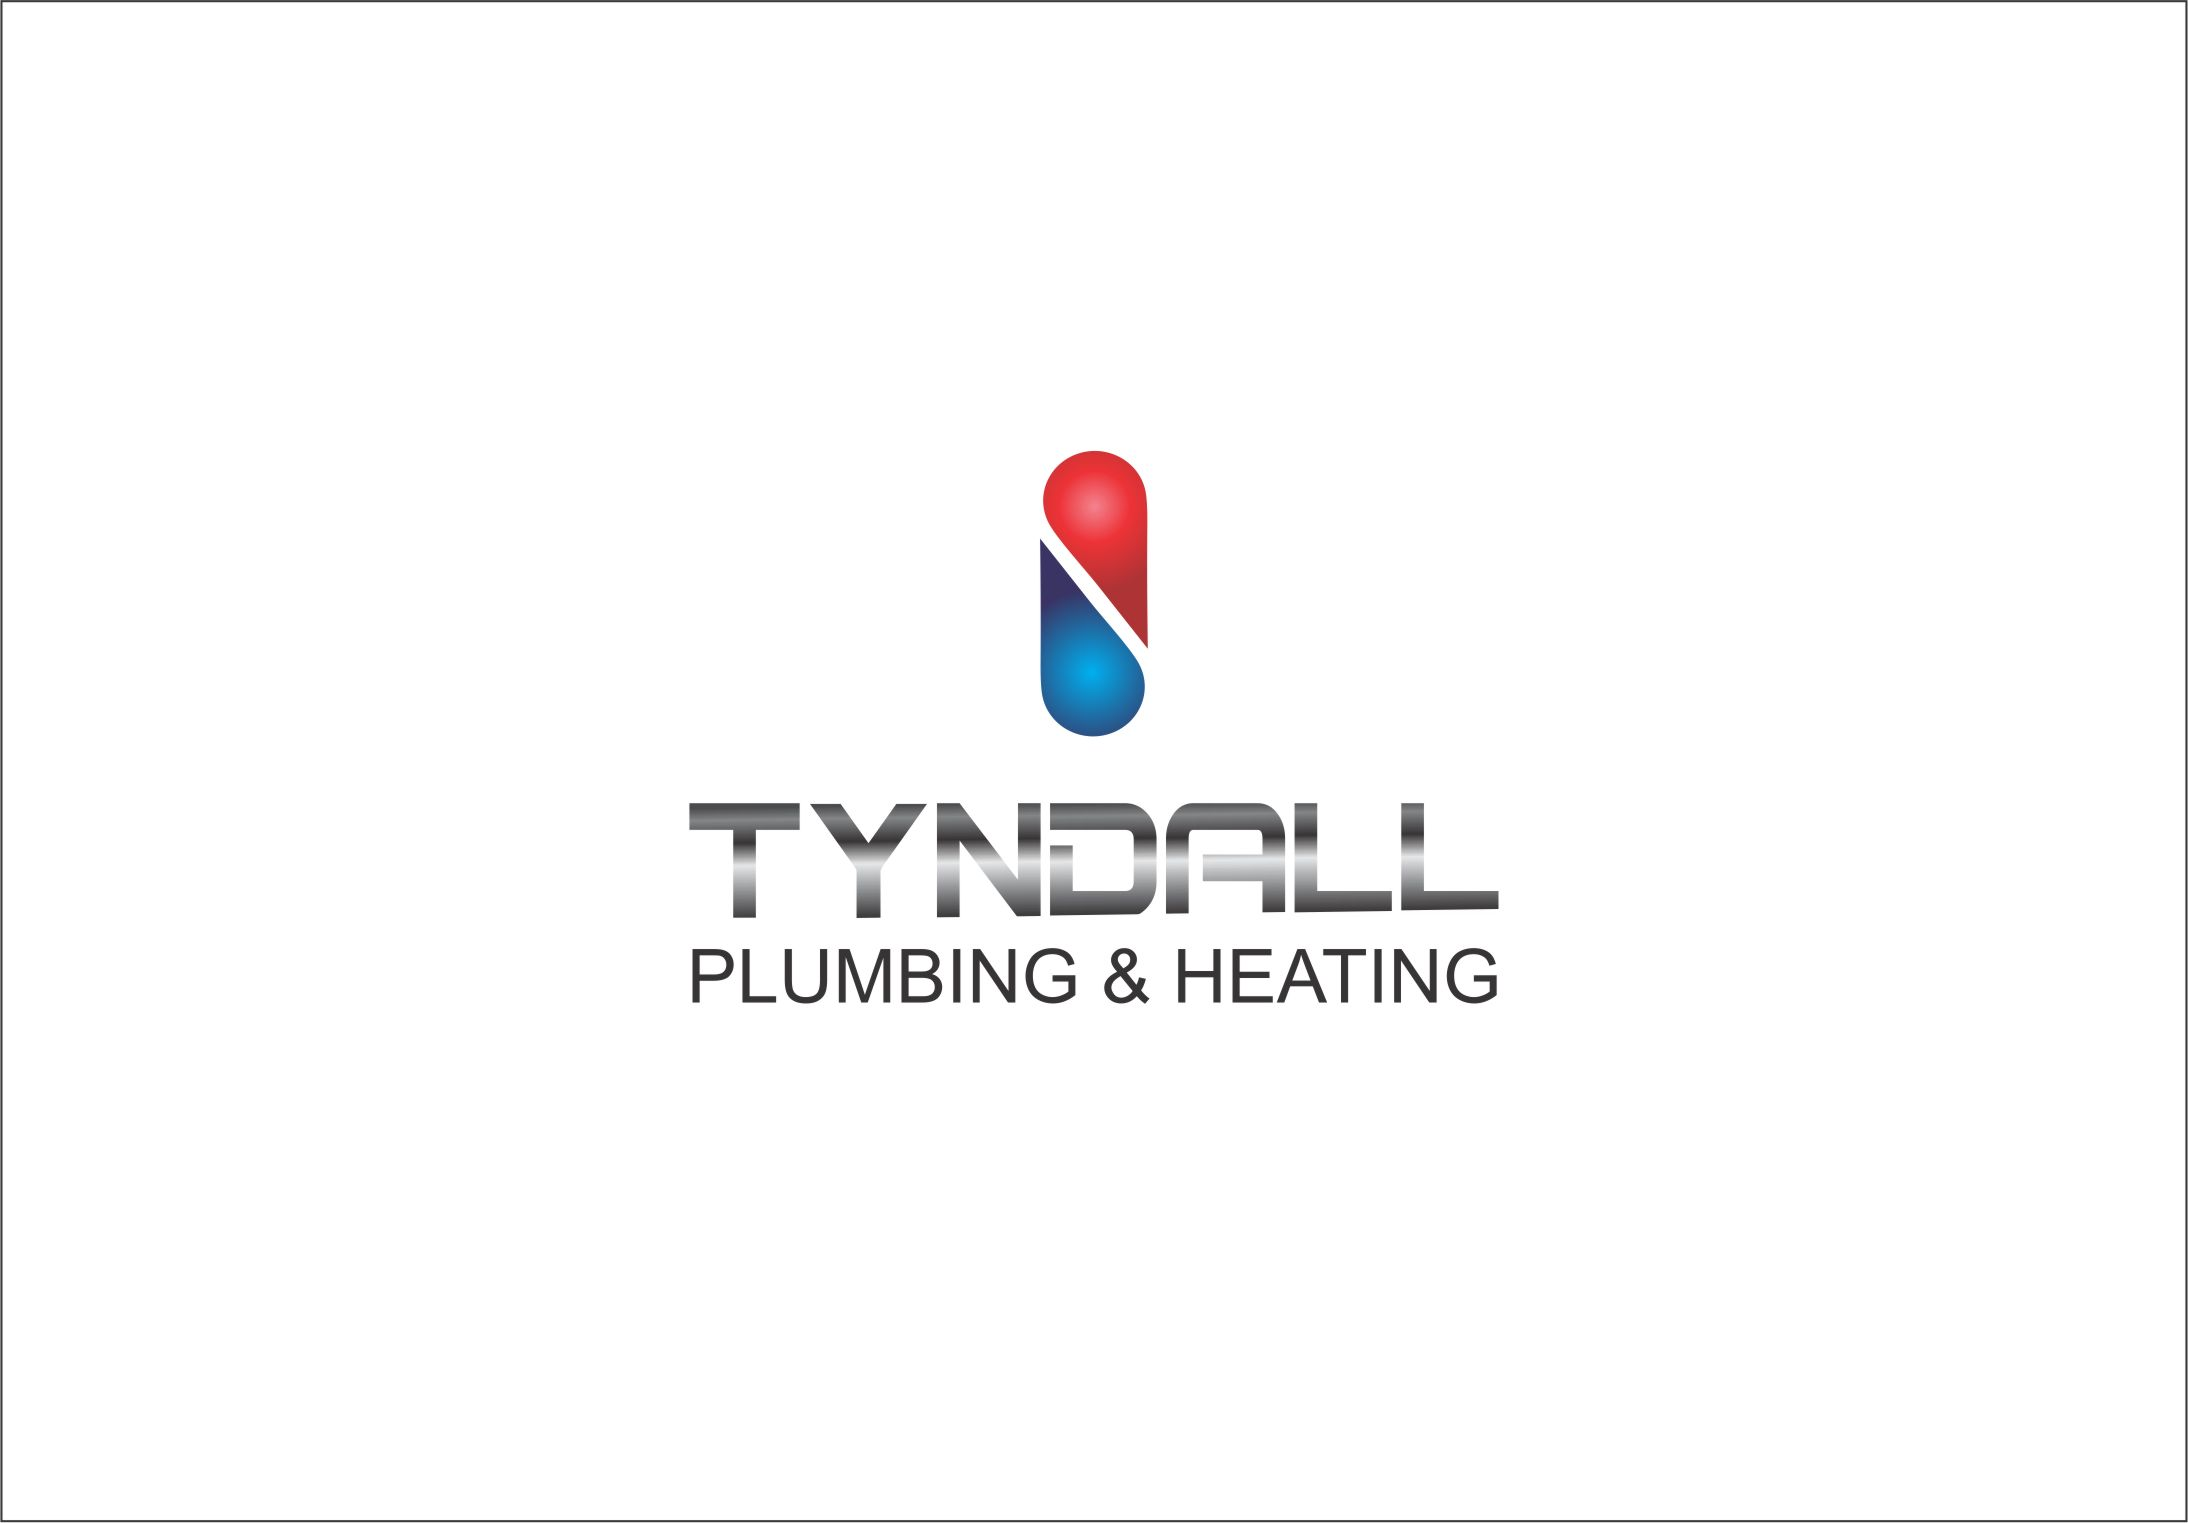 Logo Design by Nikola Kapunac - Entry No. 97 in the Logo Design Contest Imaginative Logo Design for Tyndall Plumbing & Heating.